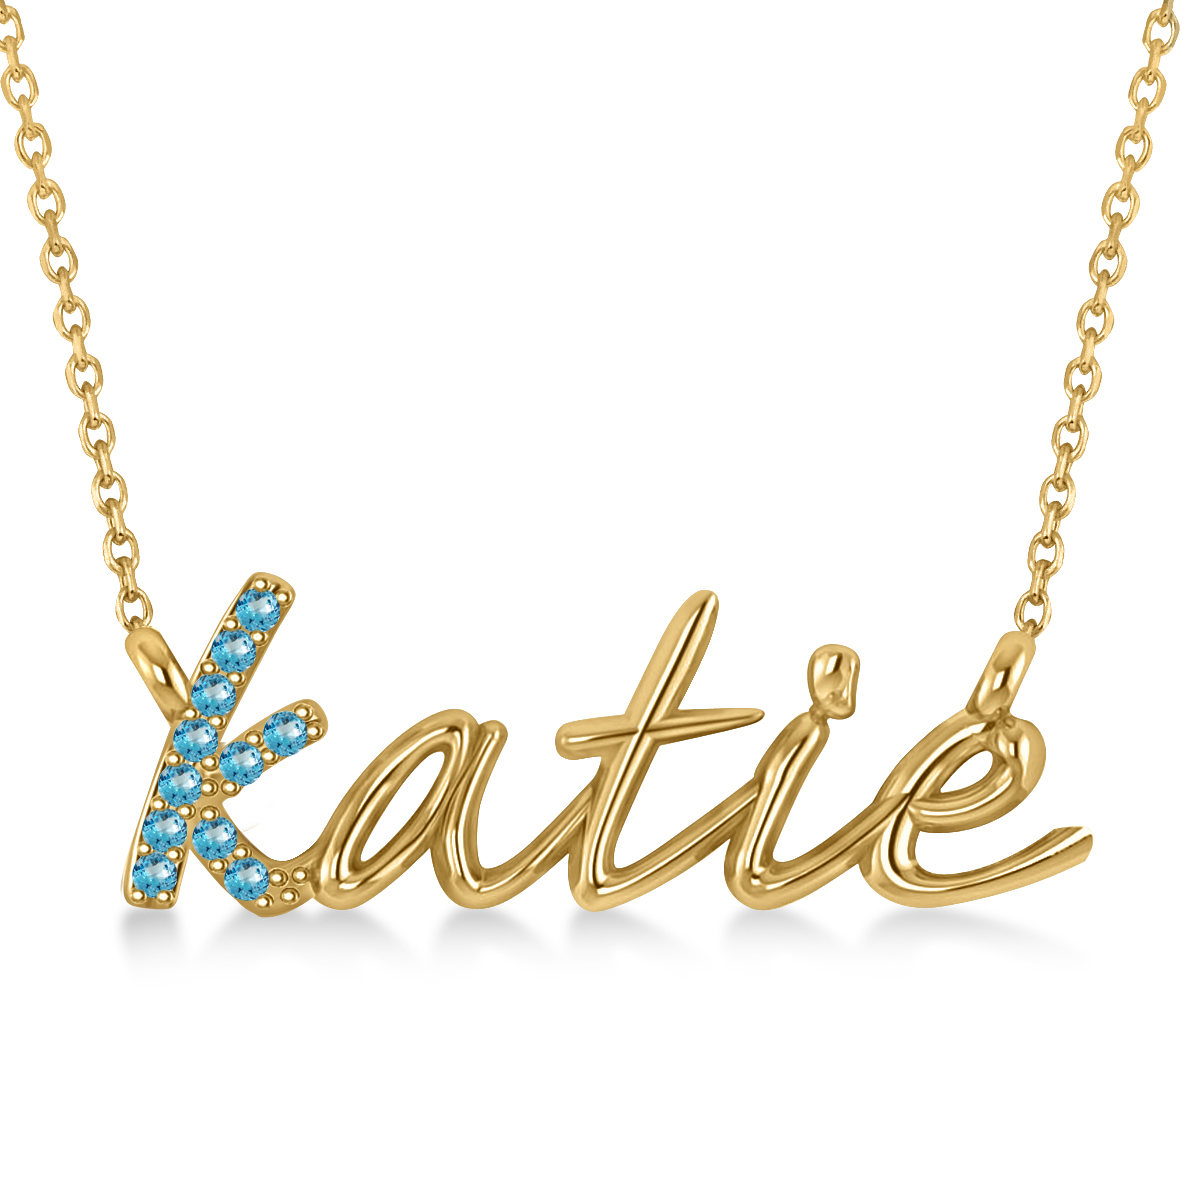 Personalized Blue Topaz Nameplate Pendant Necklace 14k Yellow Gold